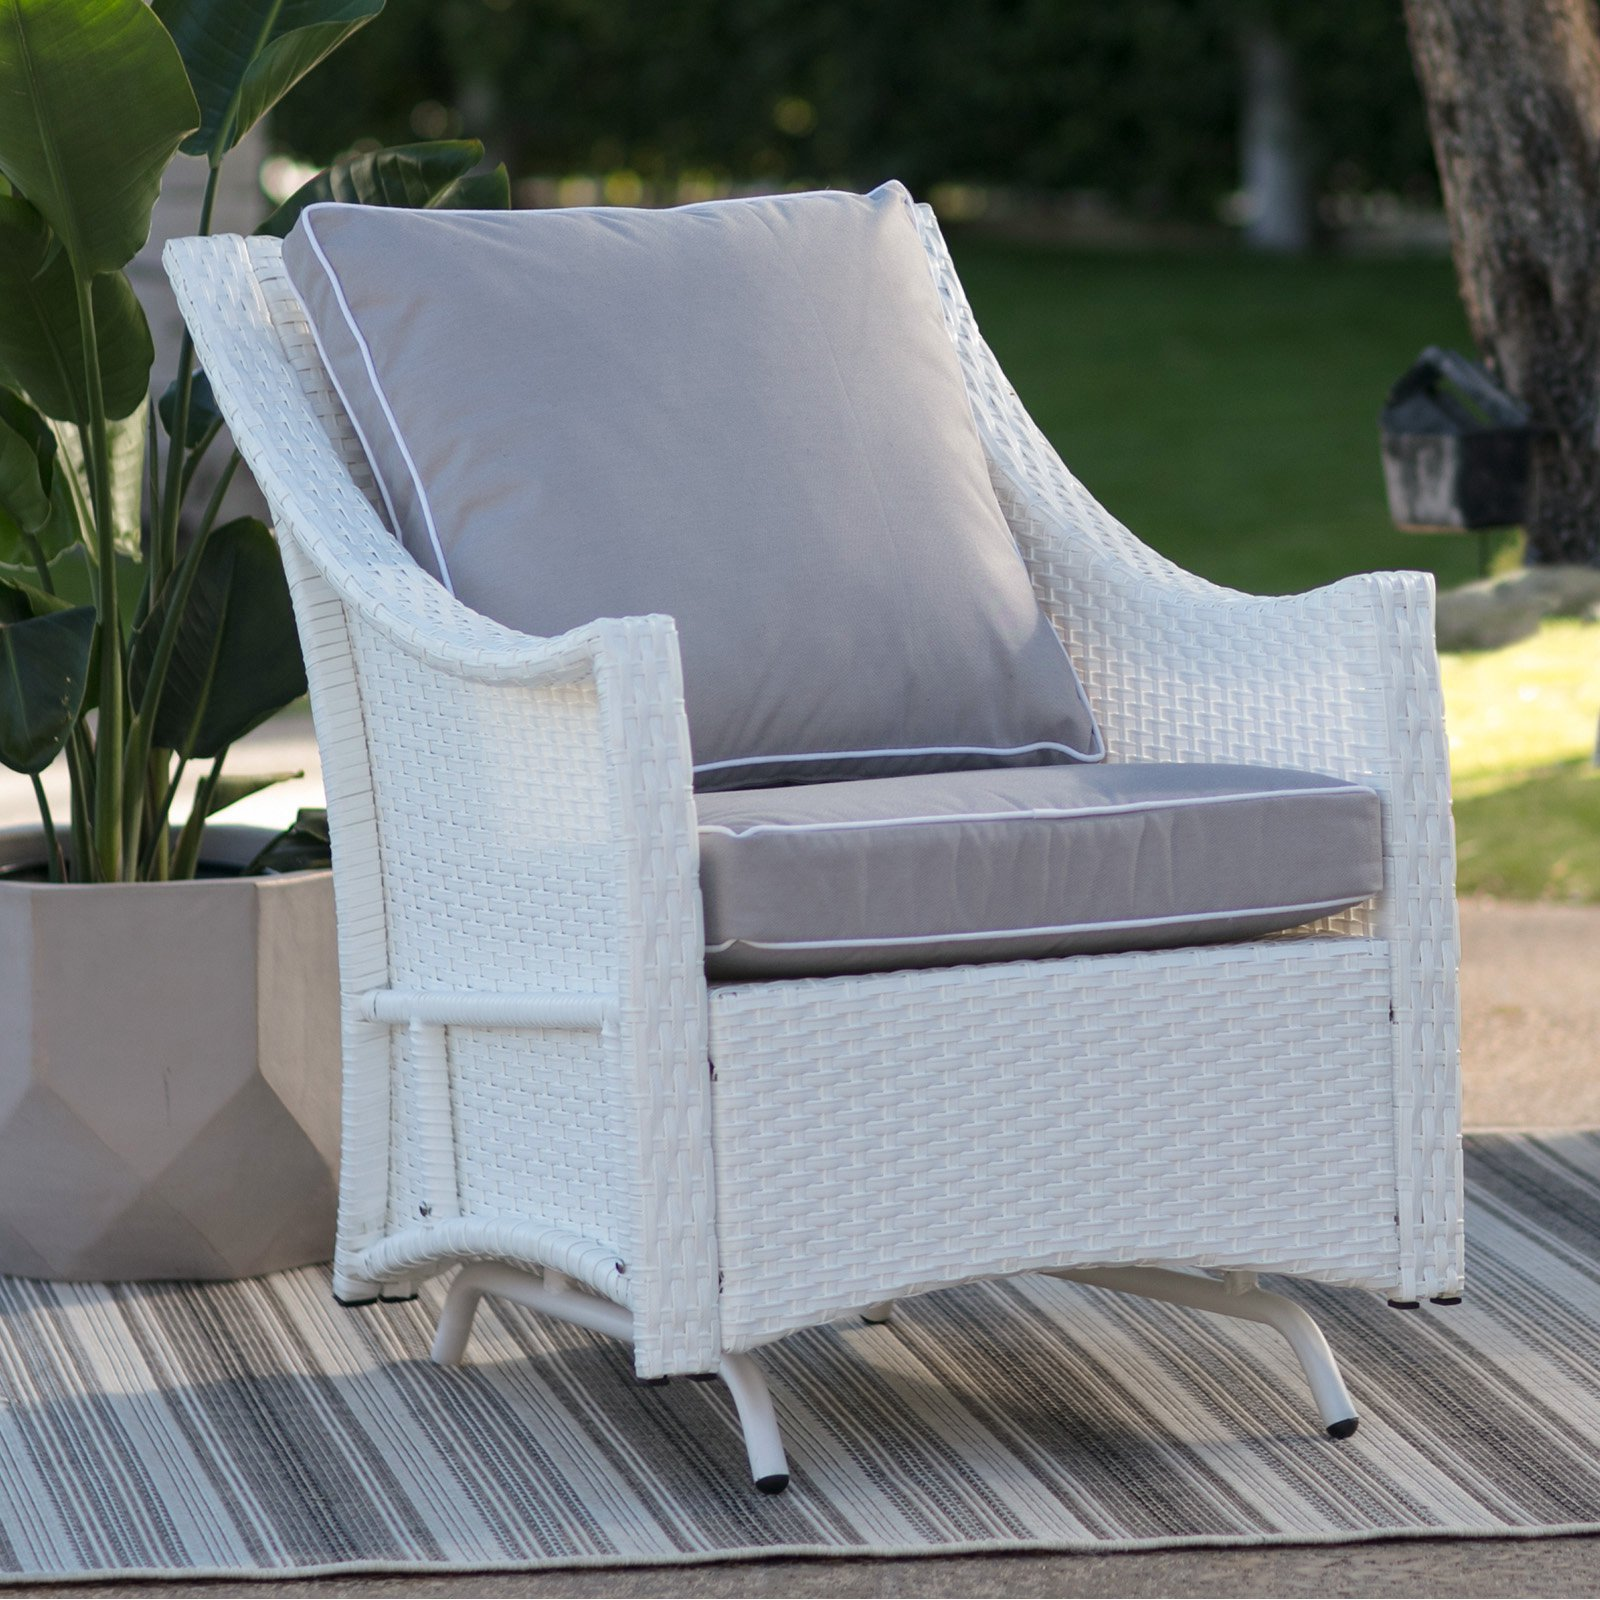 Belham Living Lindau All Weather Wicker Glider Chair with Cushion - White